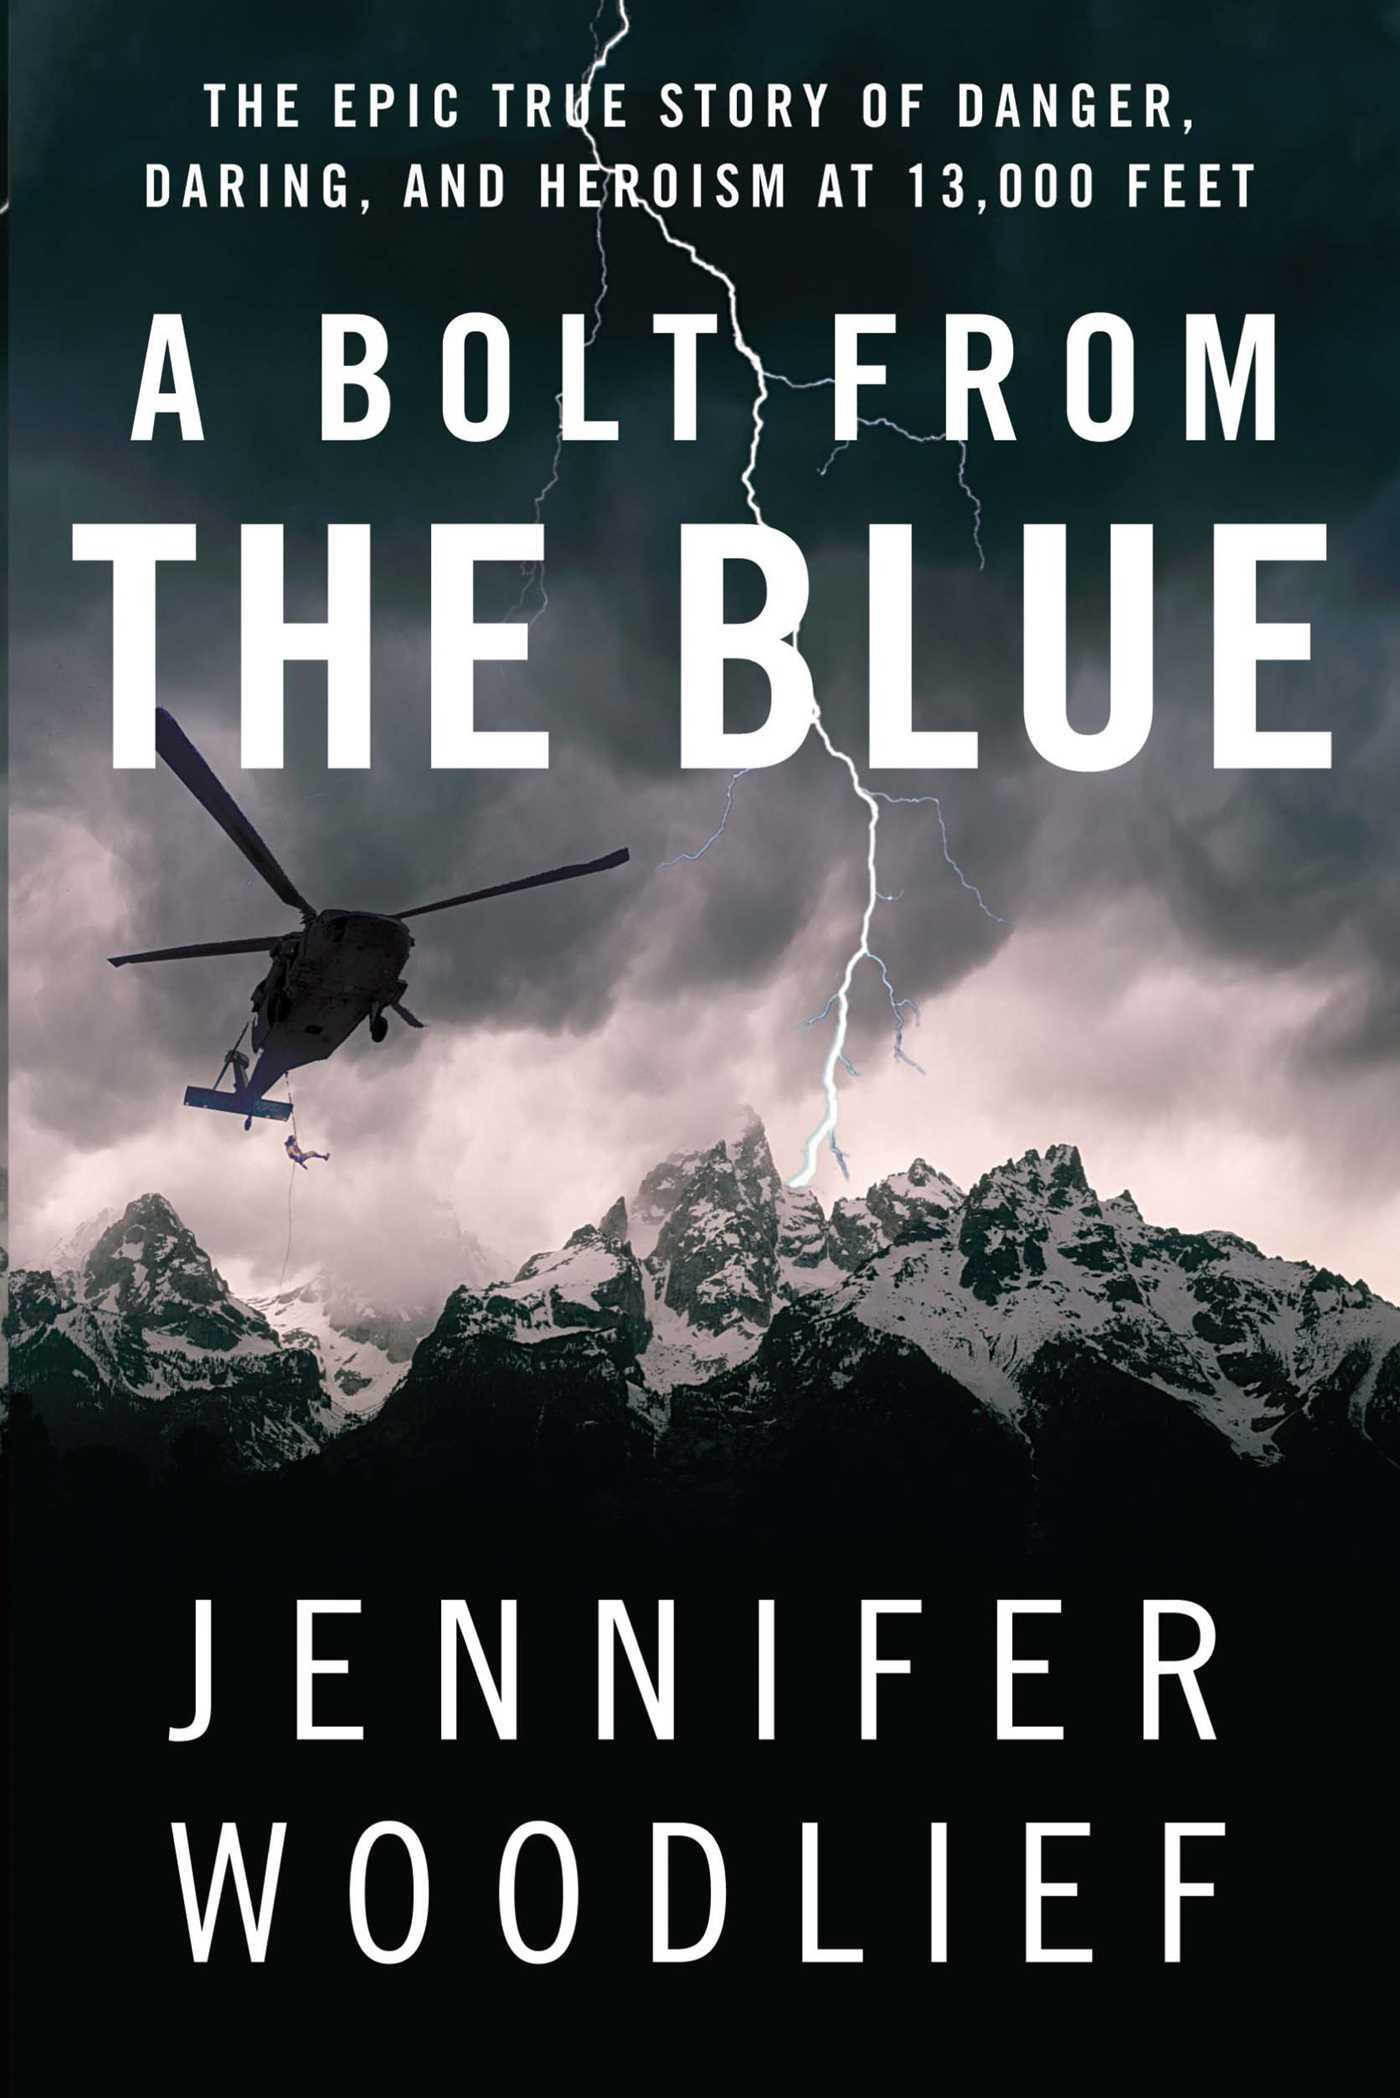 A Bolt from the Blue: The Epic True Story of Danger, Daring, and Heroism at 13,000 Feet PDF